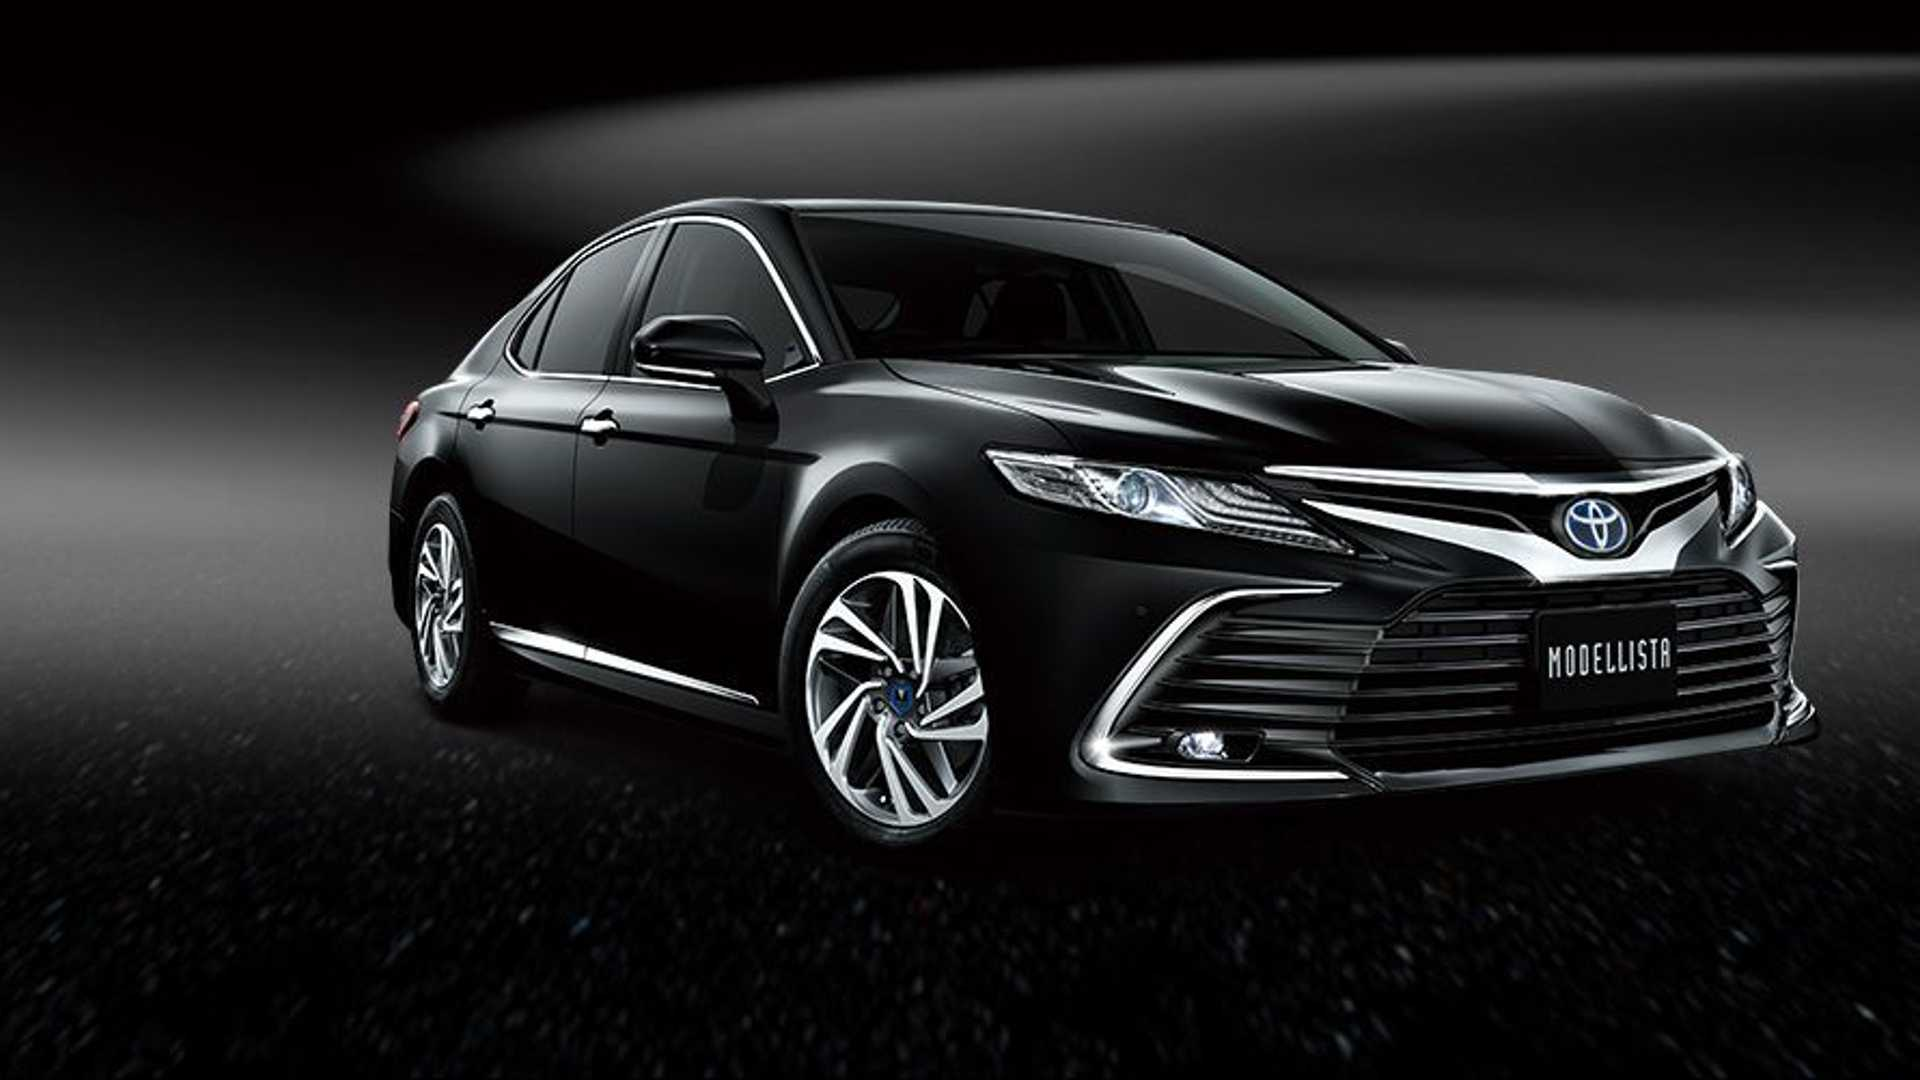 toyota-camry-modellista-black-three-quarters-nose